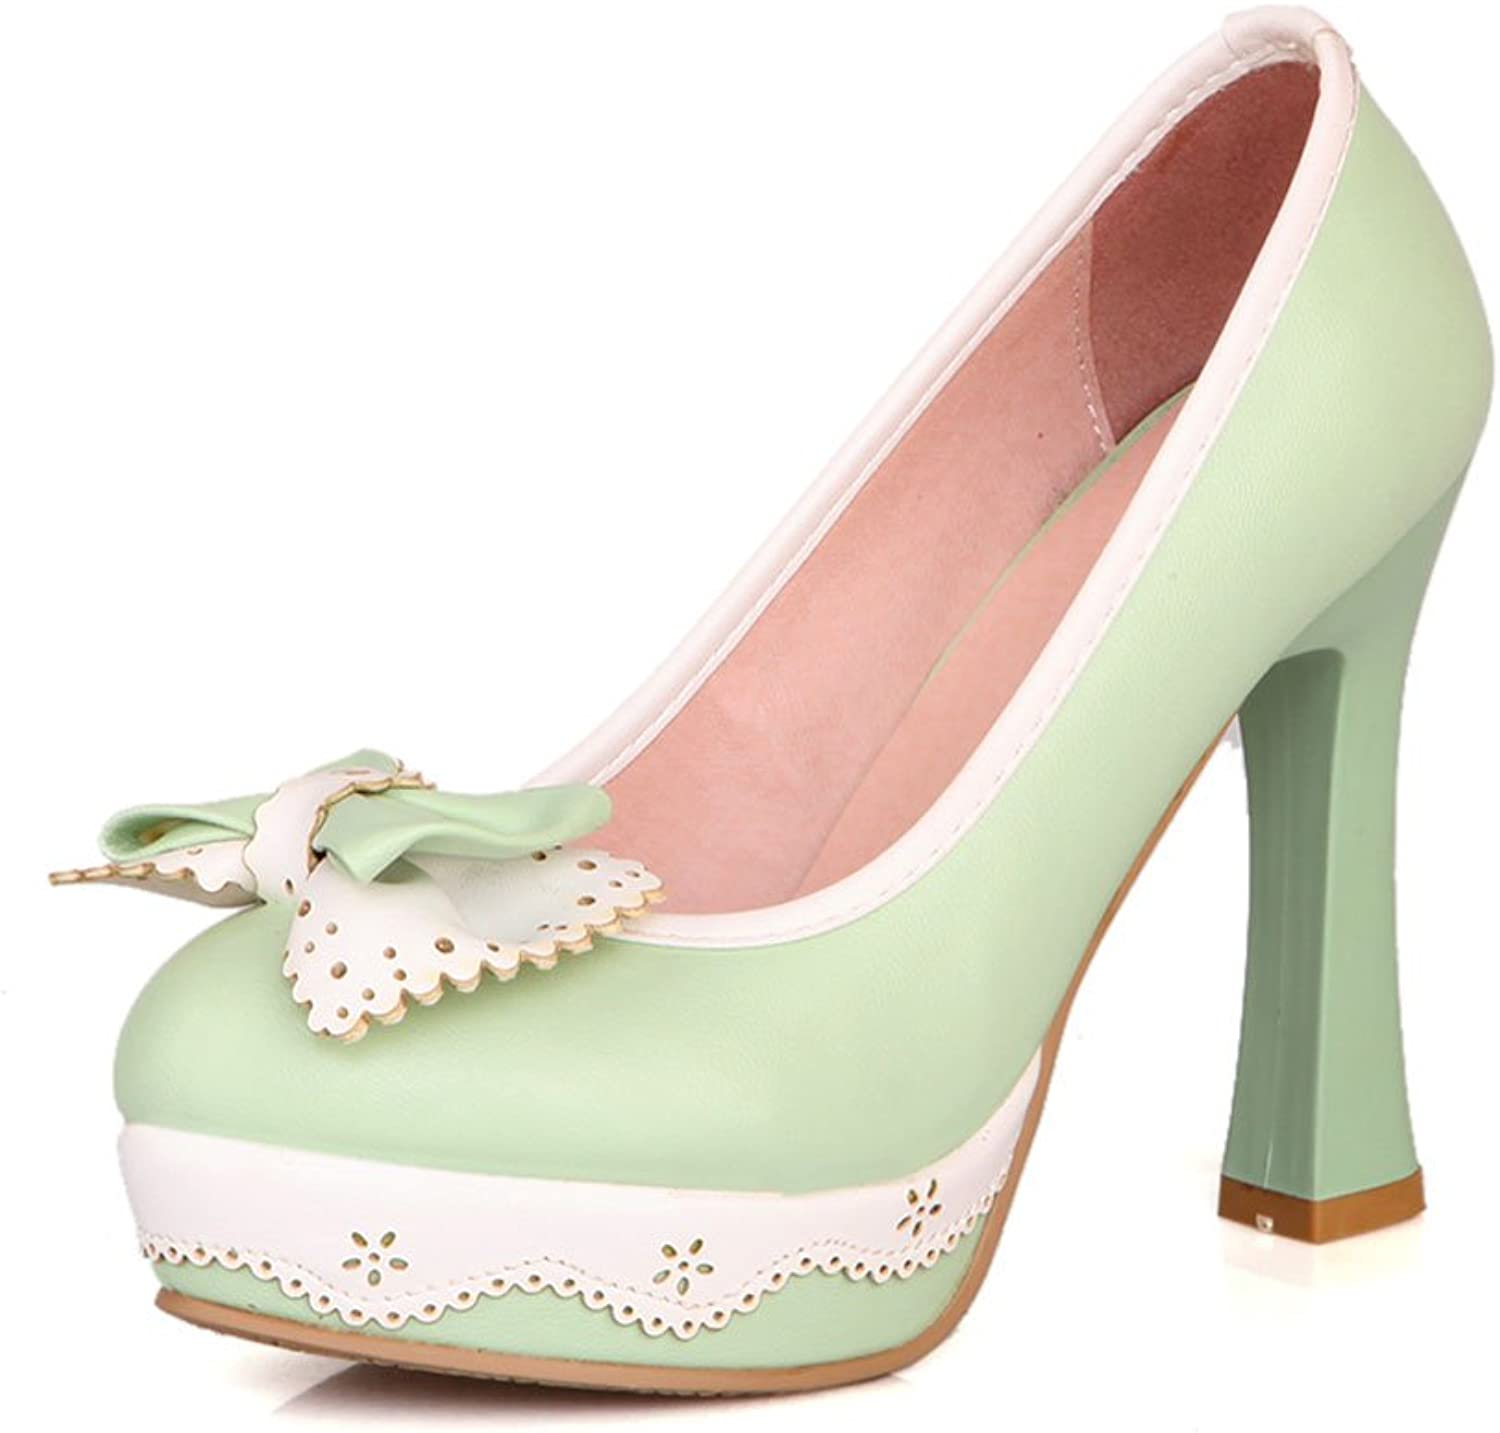 DoraTasia Fashionable Butterfly-Knot Slip on Thick Platform Hoof Heels Punched Pumps shoes Green